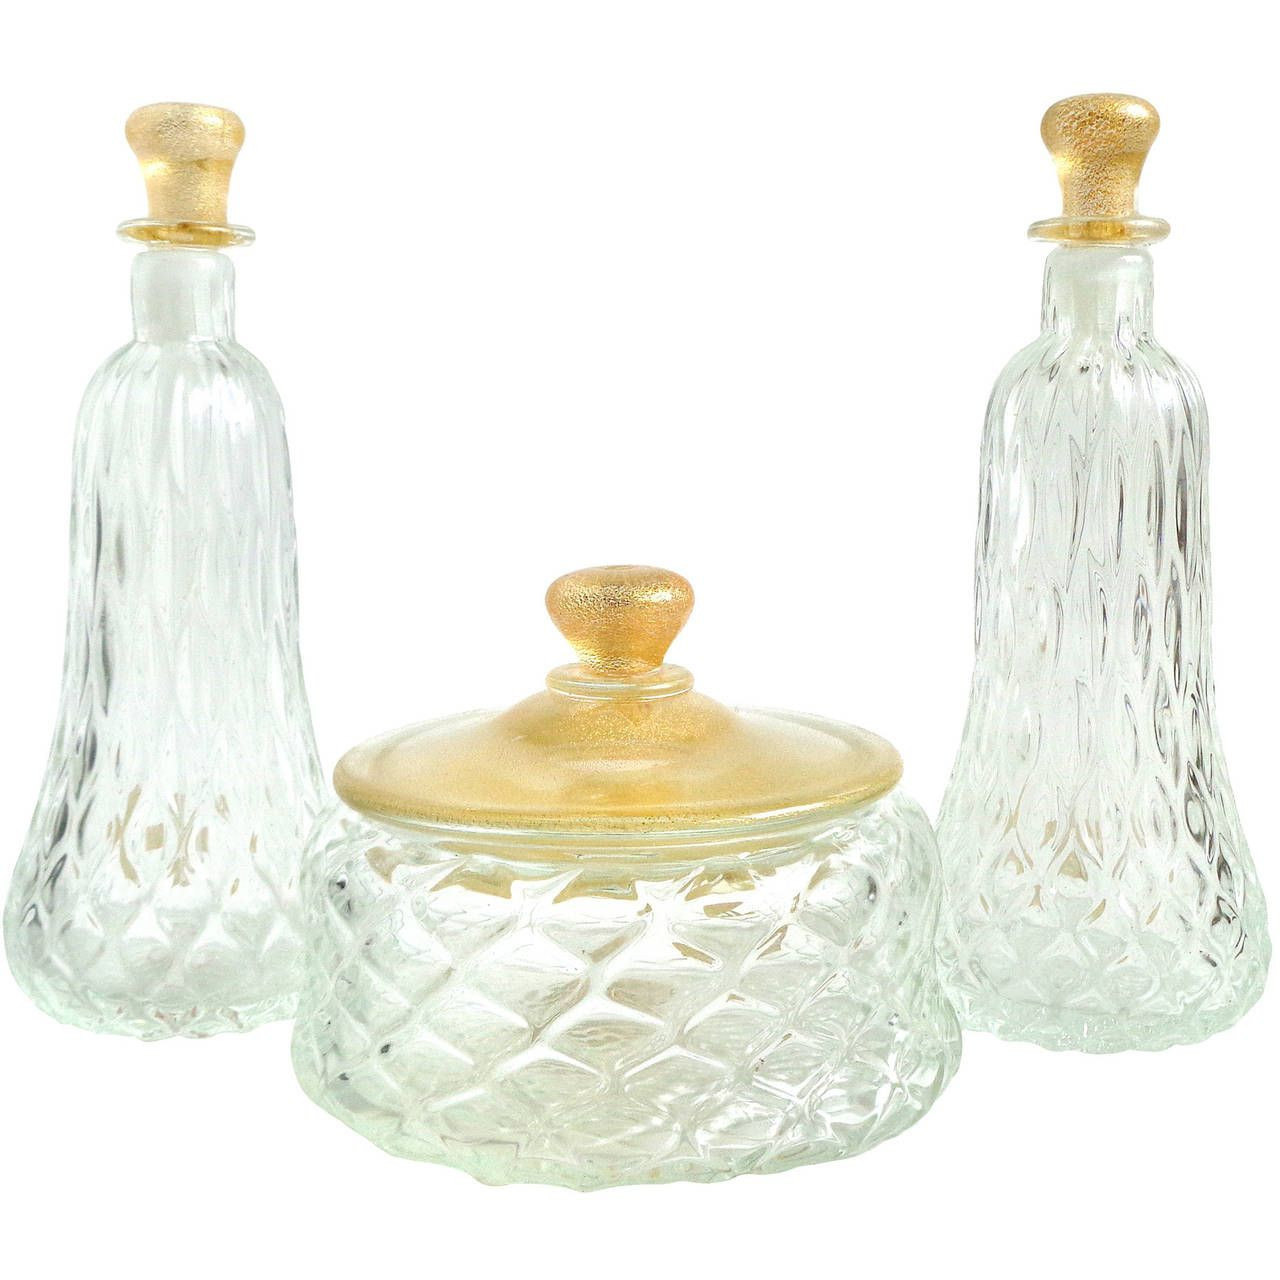 16 Great Vintage Italian Glass Vases